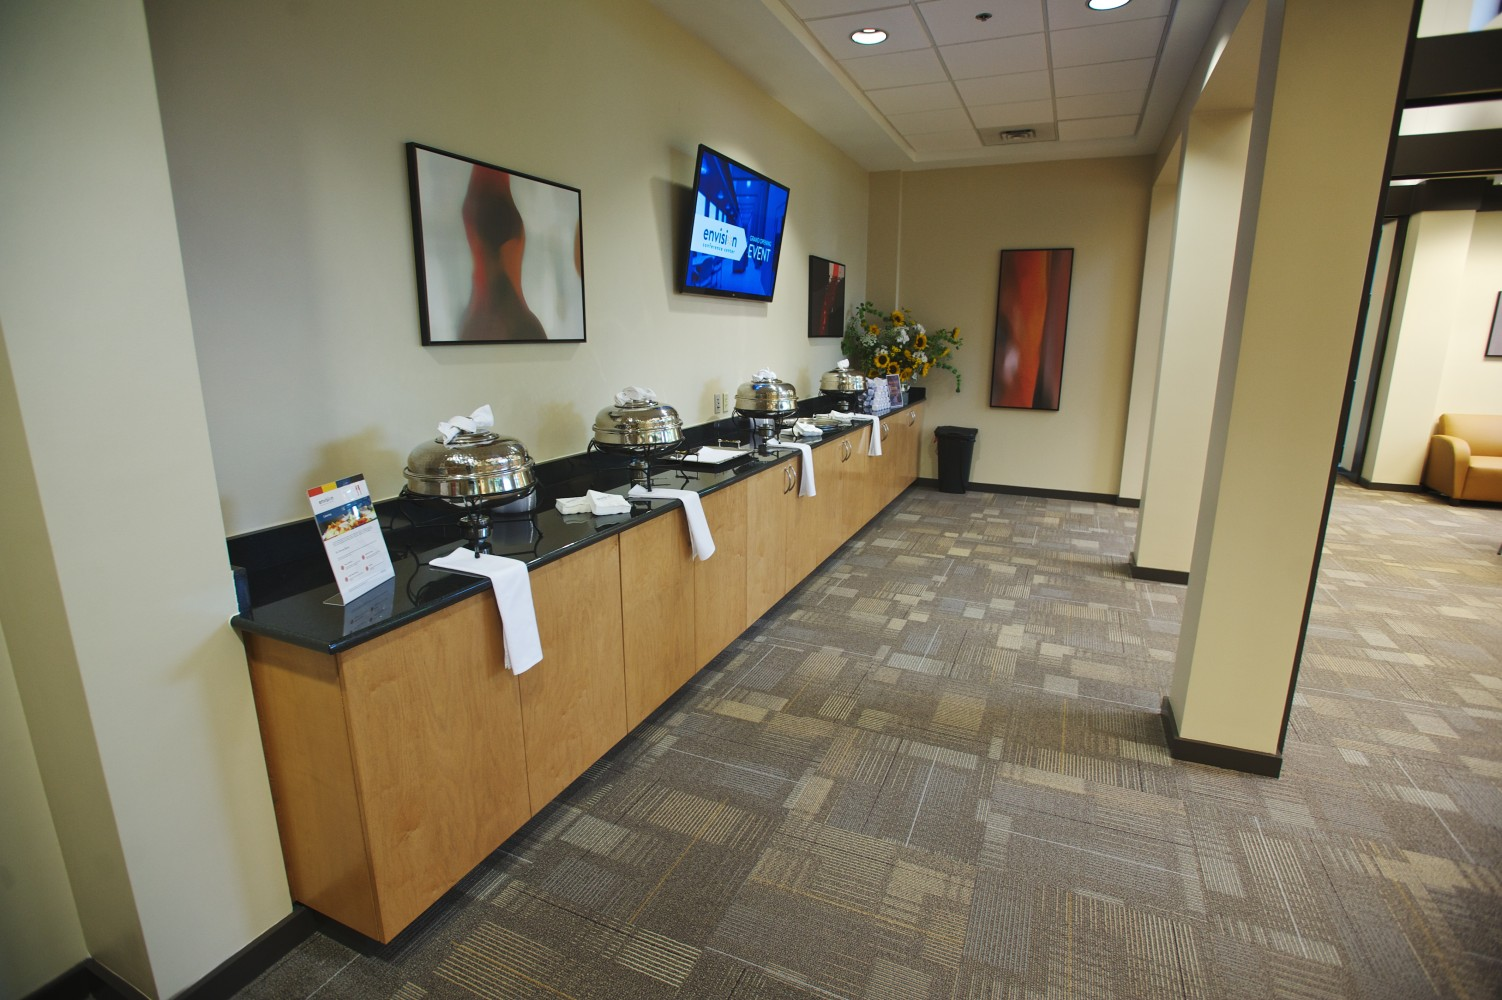 Buffet area, for small event space in Brentwood, TN call today, event space, meeting rooms for rent and business meeting spaces with world class amenities at Envision.